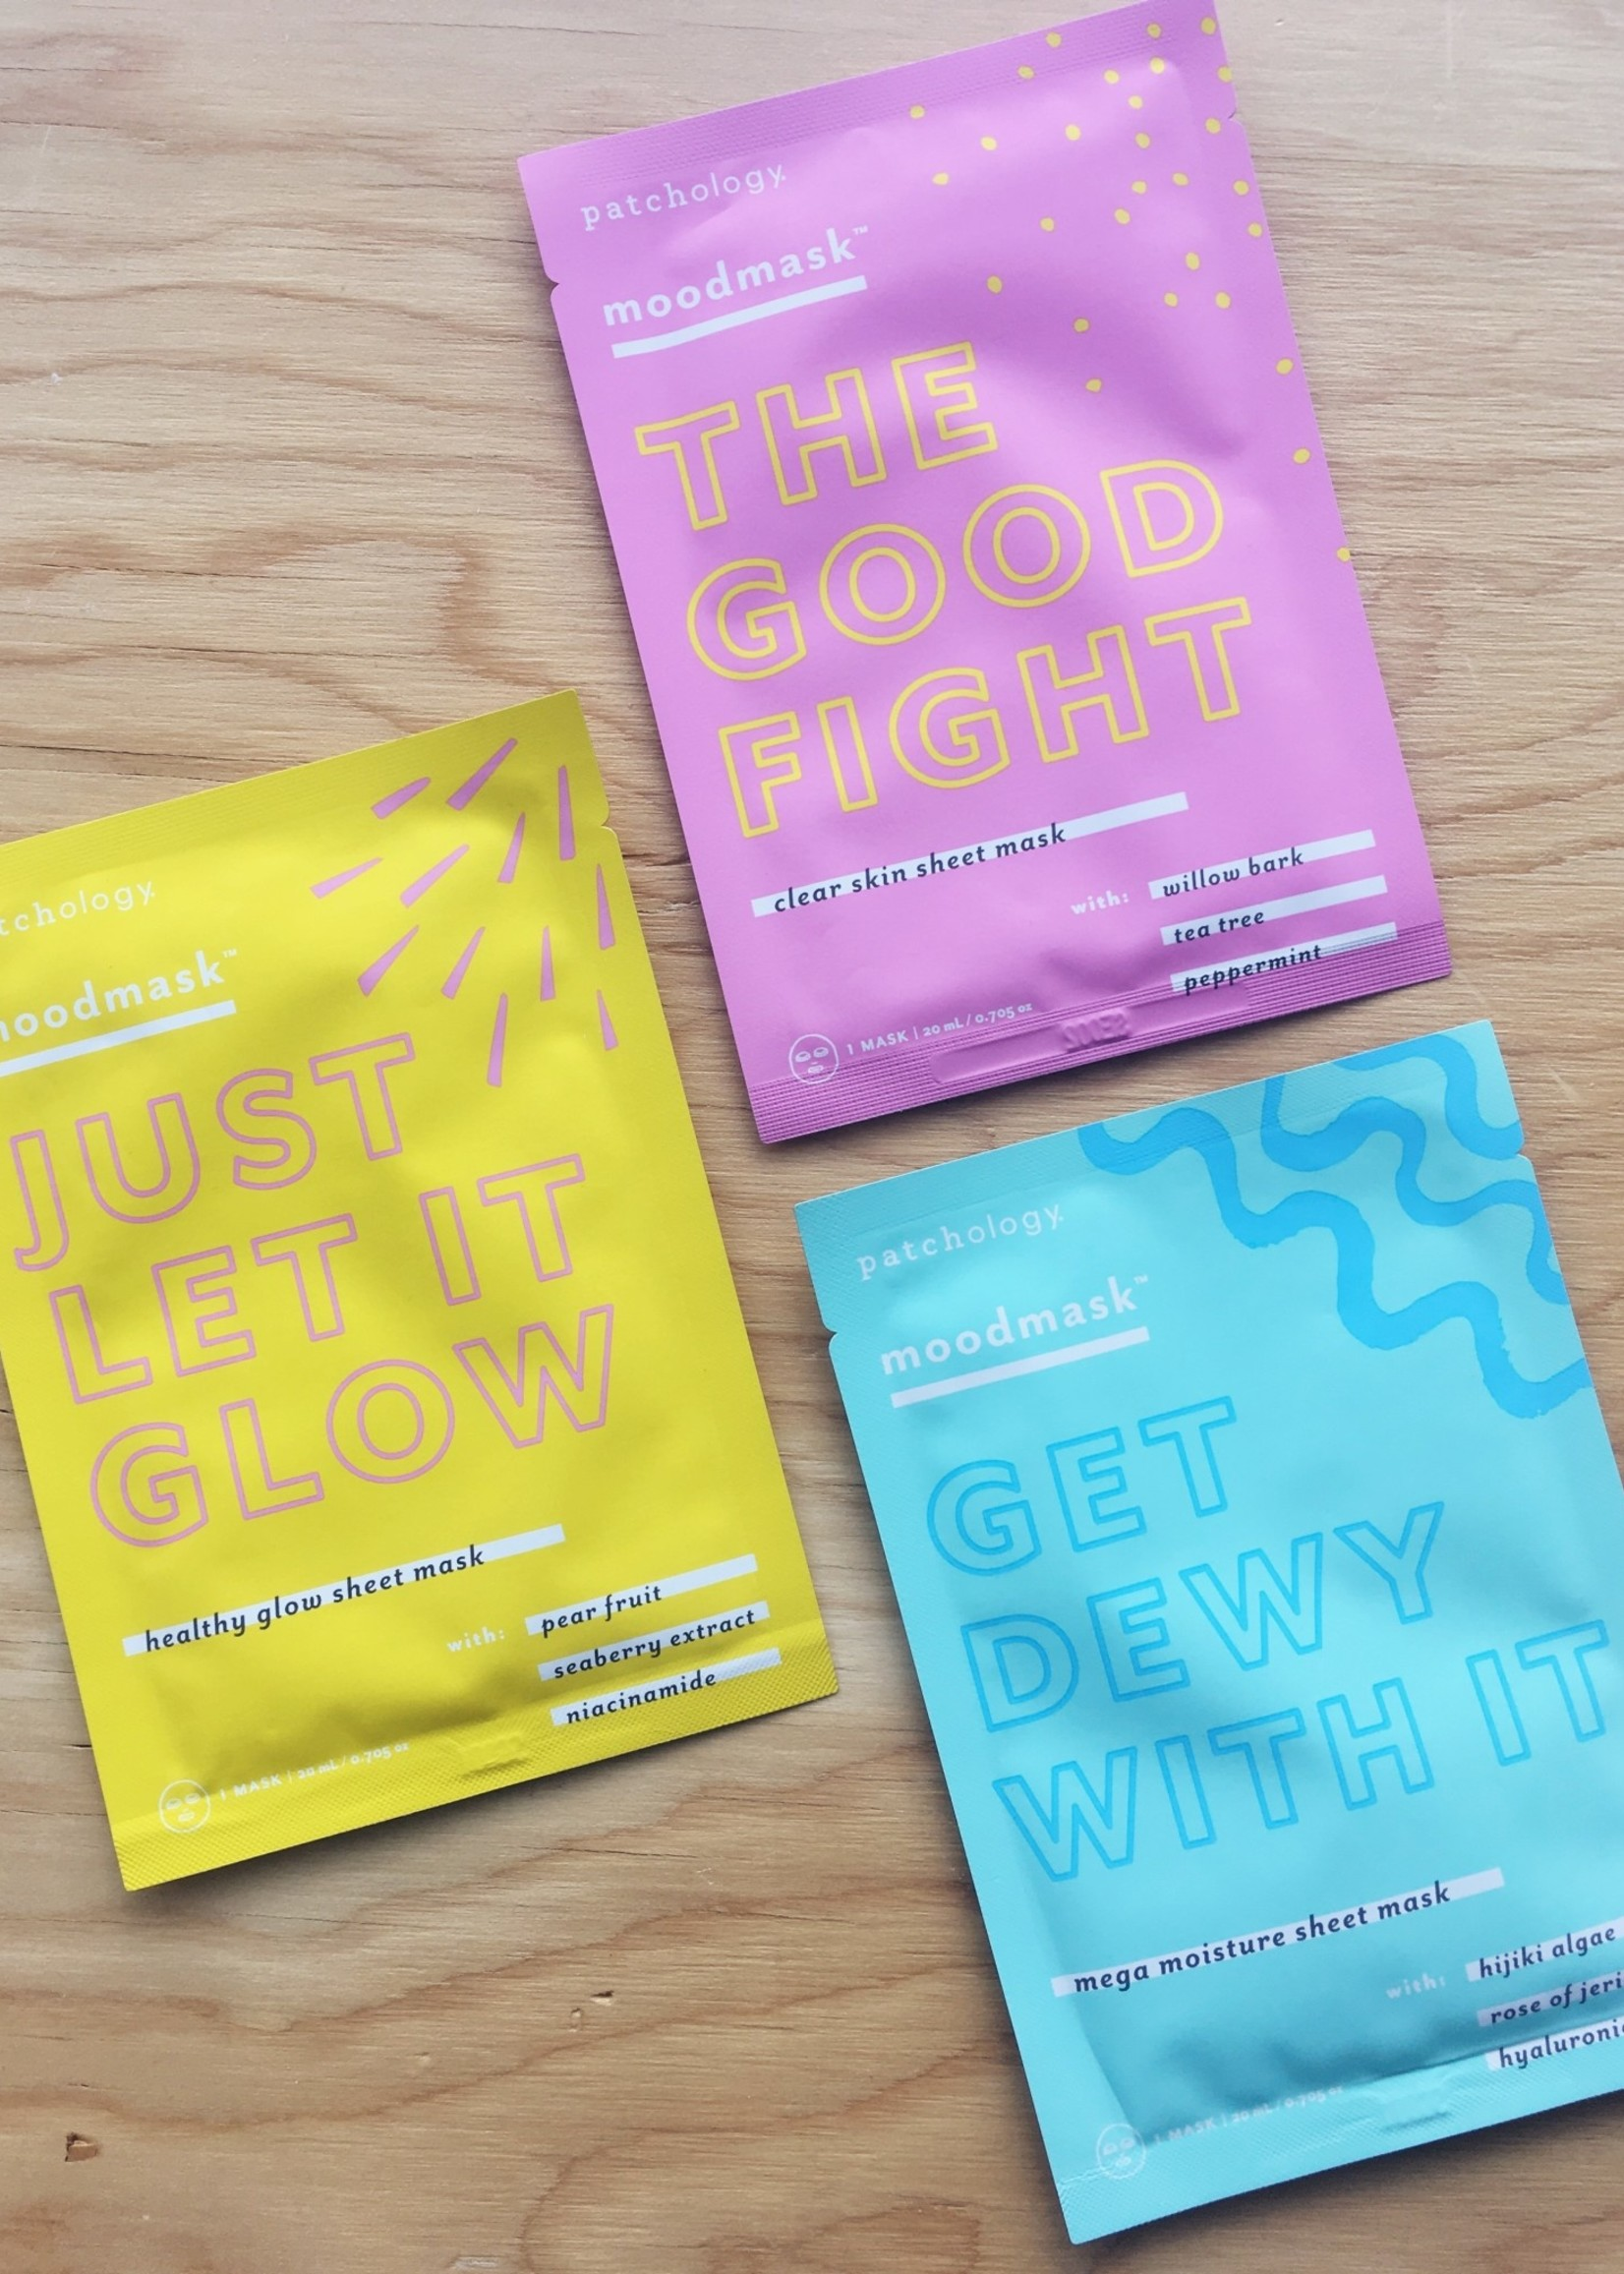 Patchology Moodmask Sheet Mask